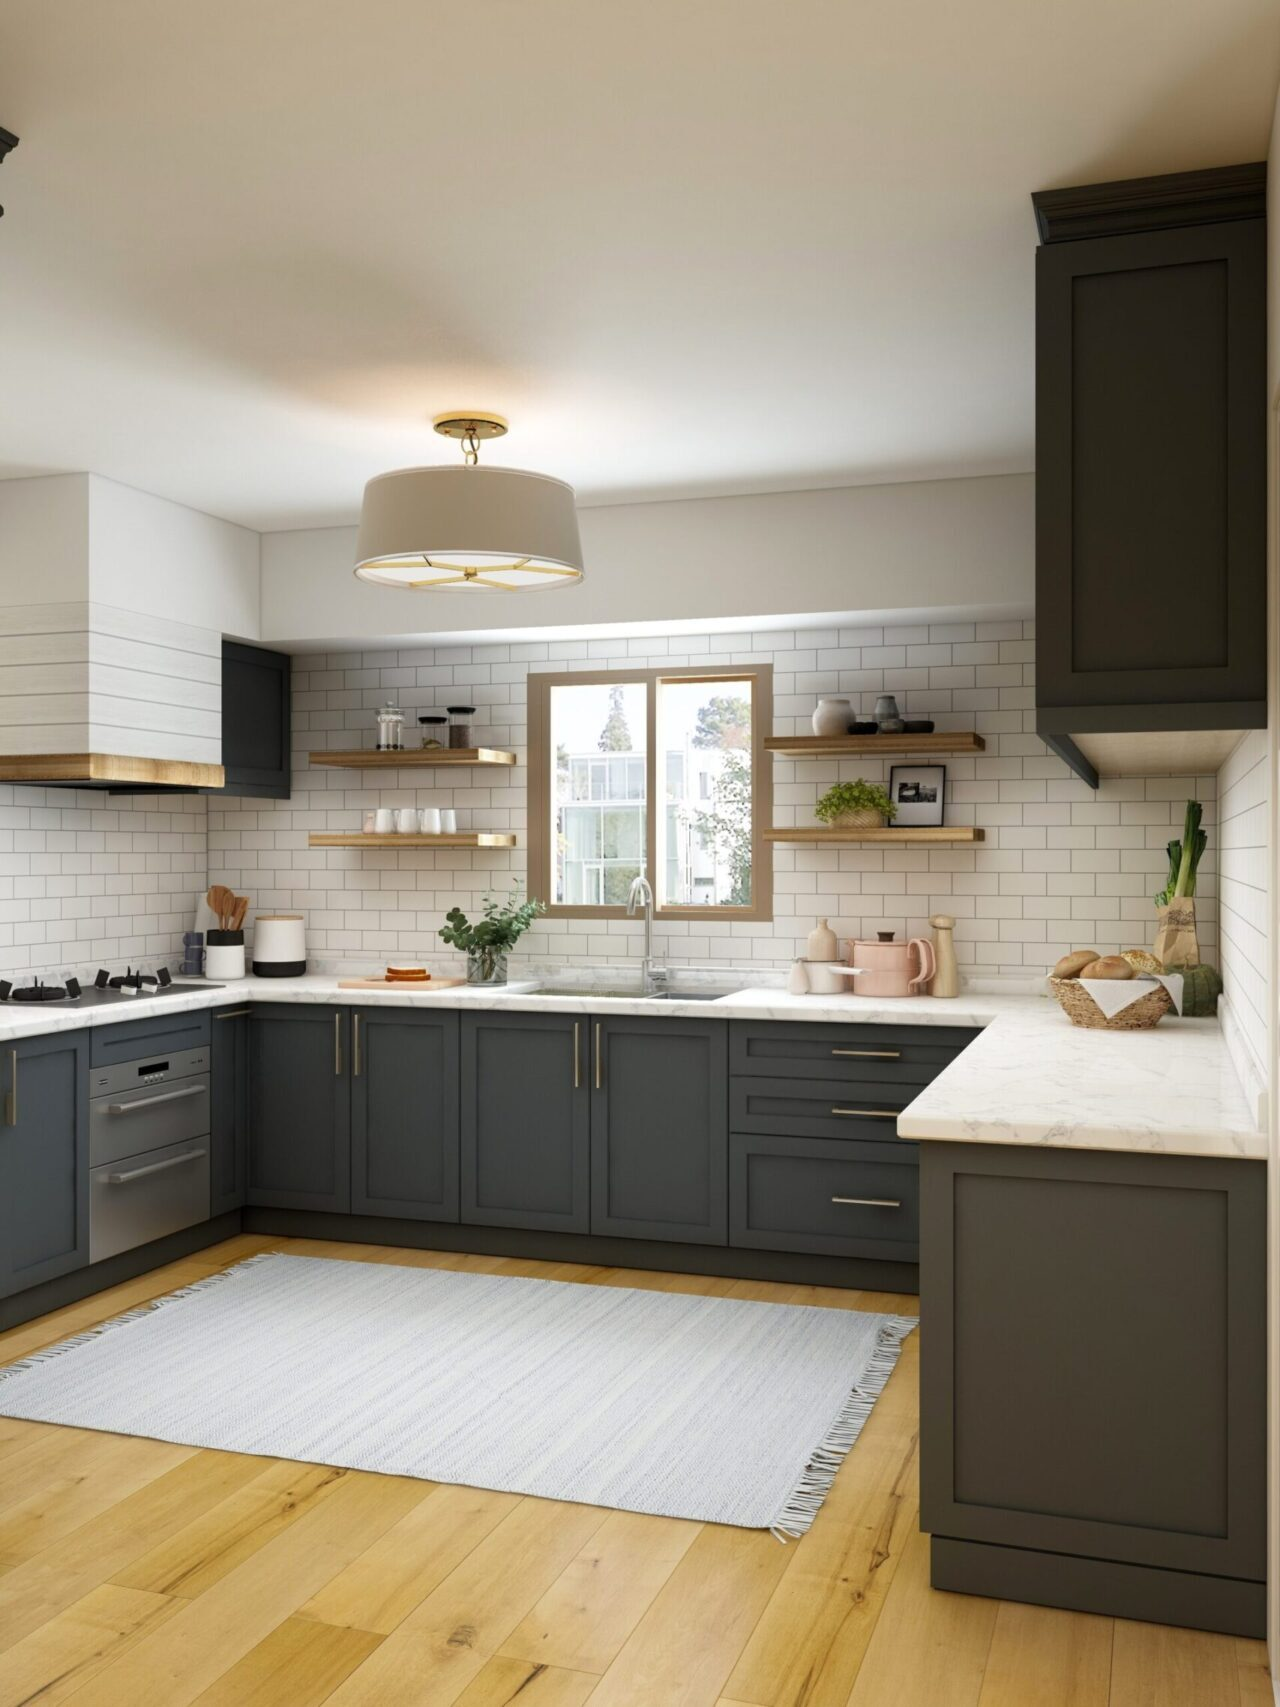 Bringing Color to Your Kitchen in 2021